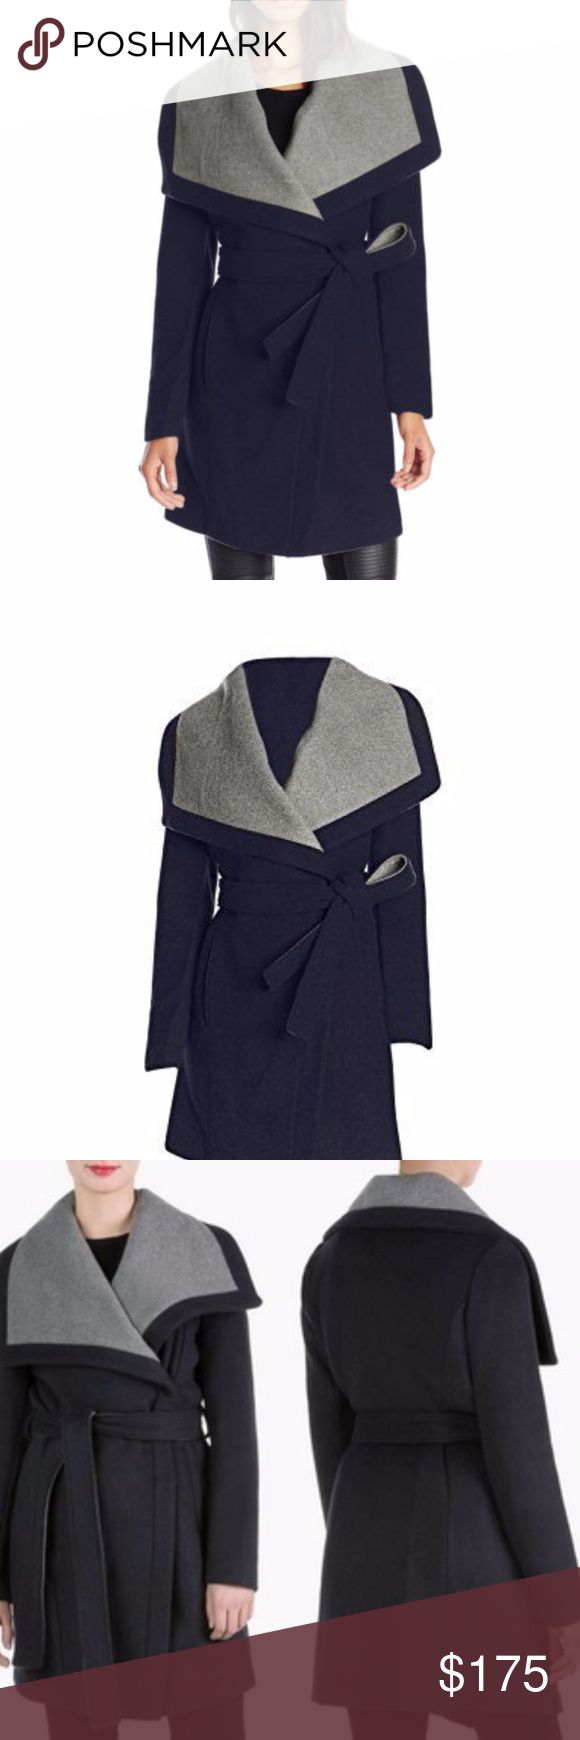 """BCBGeneration Wool Coat Size Large Navy & Grey Brand New with Tags! Navy and Grey Will keep you warm :) Asymmetrical zipper closures at front Wing collar Pleated back at hem Hits below knee, at approximately 40"""" long. Belted Materials: Grey: wool/polyester blend BCBGeneration Jackets & Coats"""